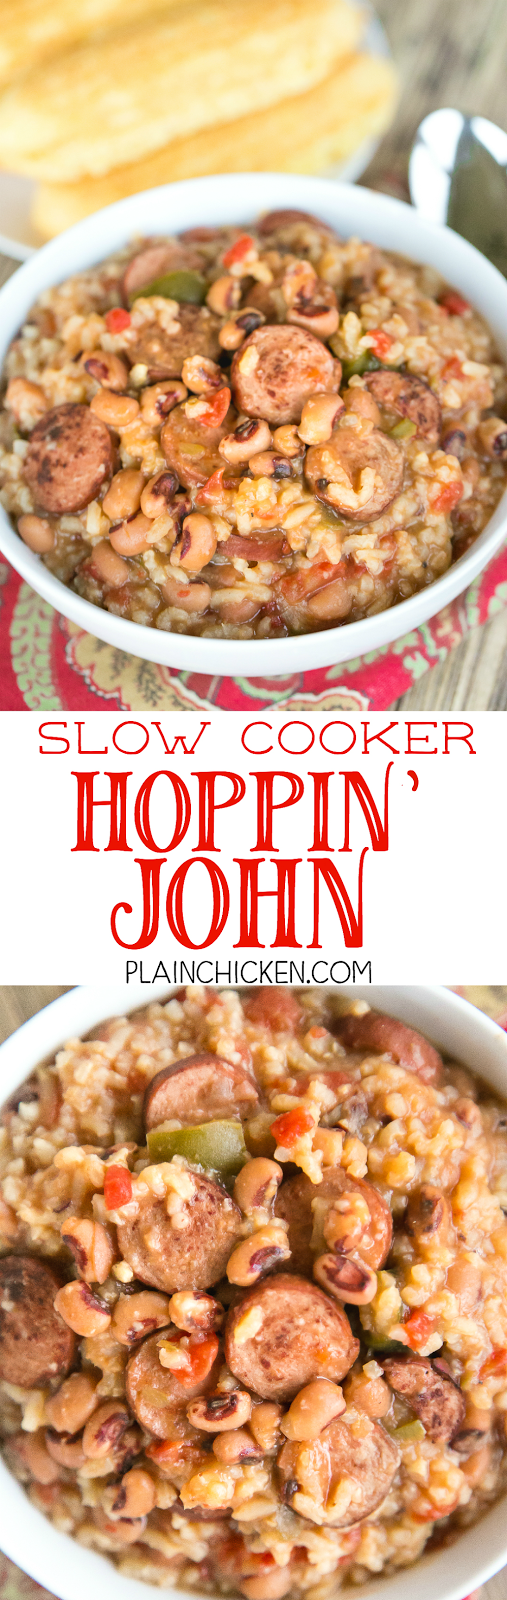 Slow Cooker Hoppin' John - perfect for ringing in the New Year! Black Eyed Peas, diced tomatoes and green chiles, smoked sausage, beef broth, onion, bell pepper, cajun seasoning and rice. Comfort food at its best! All you need is some cornbread and you are ready to eat!